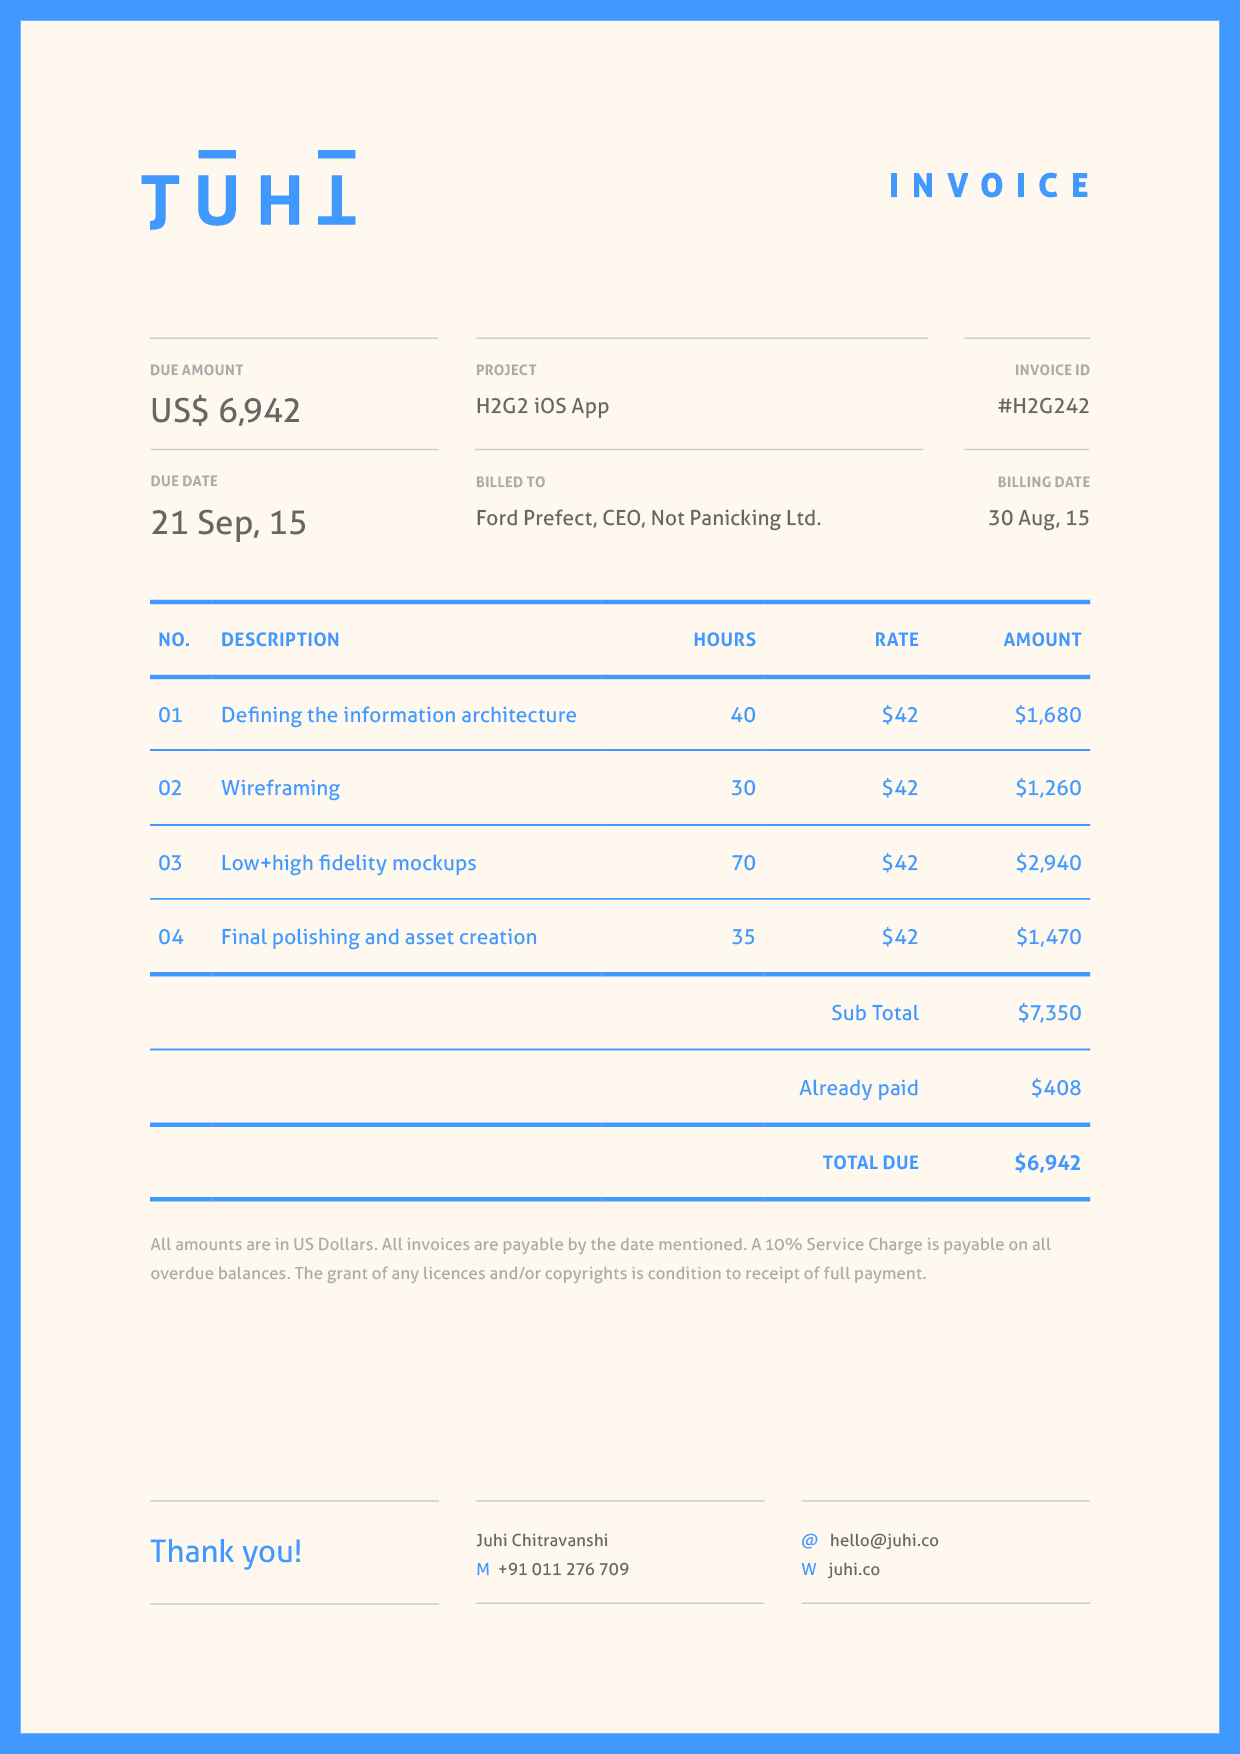 Usdgus  Winsome Dont Hold Back On Your Invoice  Inspiring Designs  With Glamorous Invoice By Juhi Chitravanshi Follow With Astounding Small Receipt Printer Also Check Receipt Template Word In Addition Ll Bean Return Policy No Receipt And Hb Receipt Tracking As Well As General Receipt Template Additionally Money Receipt Form From Inspirationfeedcom With Usdgus  Glamorous Dont Hold Back On Your Invoice  Inspiring Designs  With Astounding Invoice By Juhi Chitravanshi Follow And Winsome Small Receipt Printer Also Check Receipt Template Word In Addition Ll Bean Return Policy No Receipt From Inspirationfeedcom